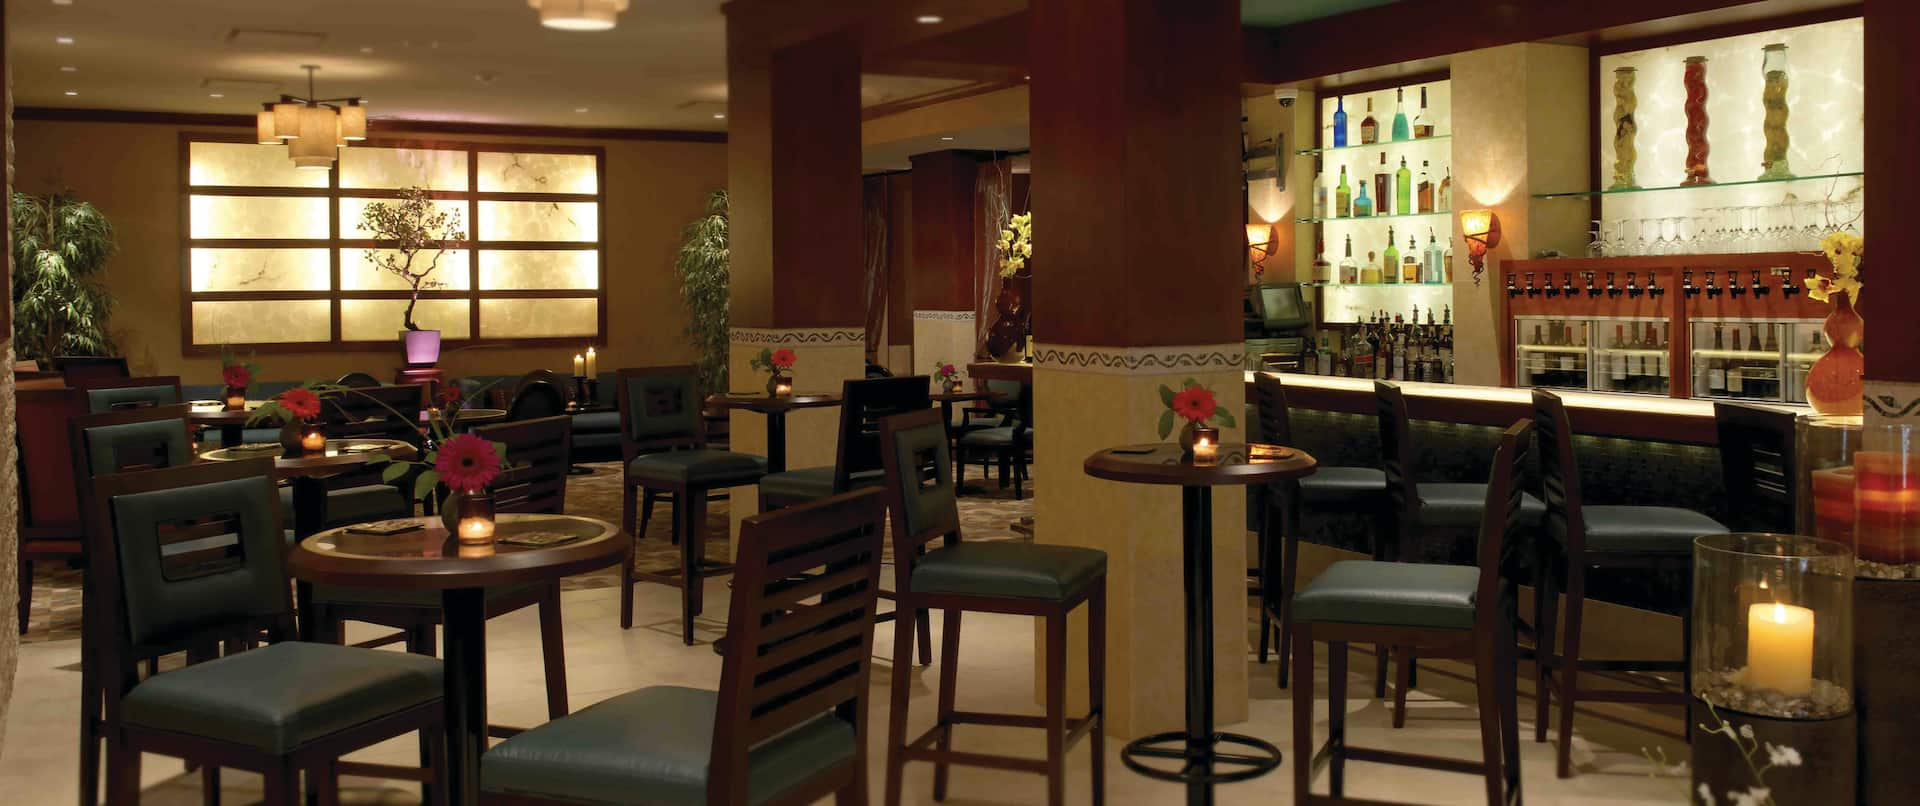 Bar and Restaurant Seating